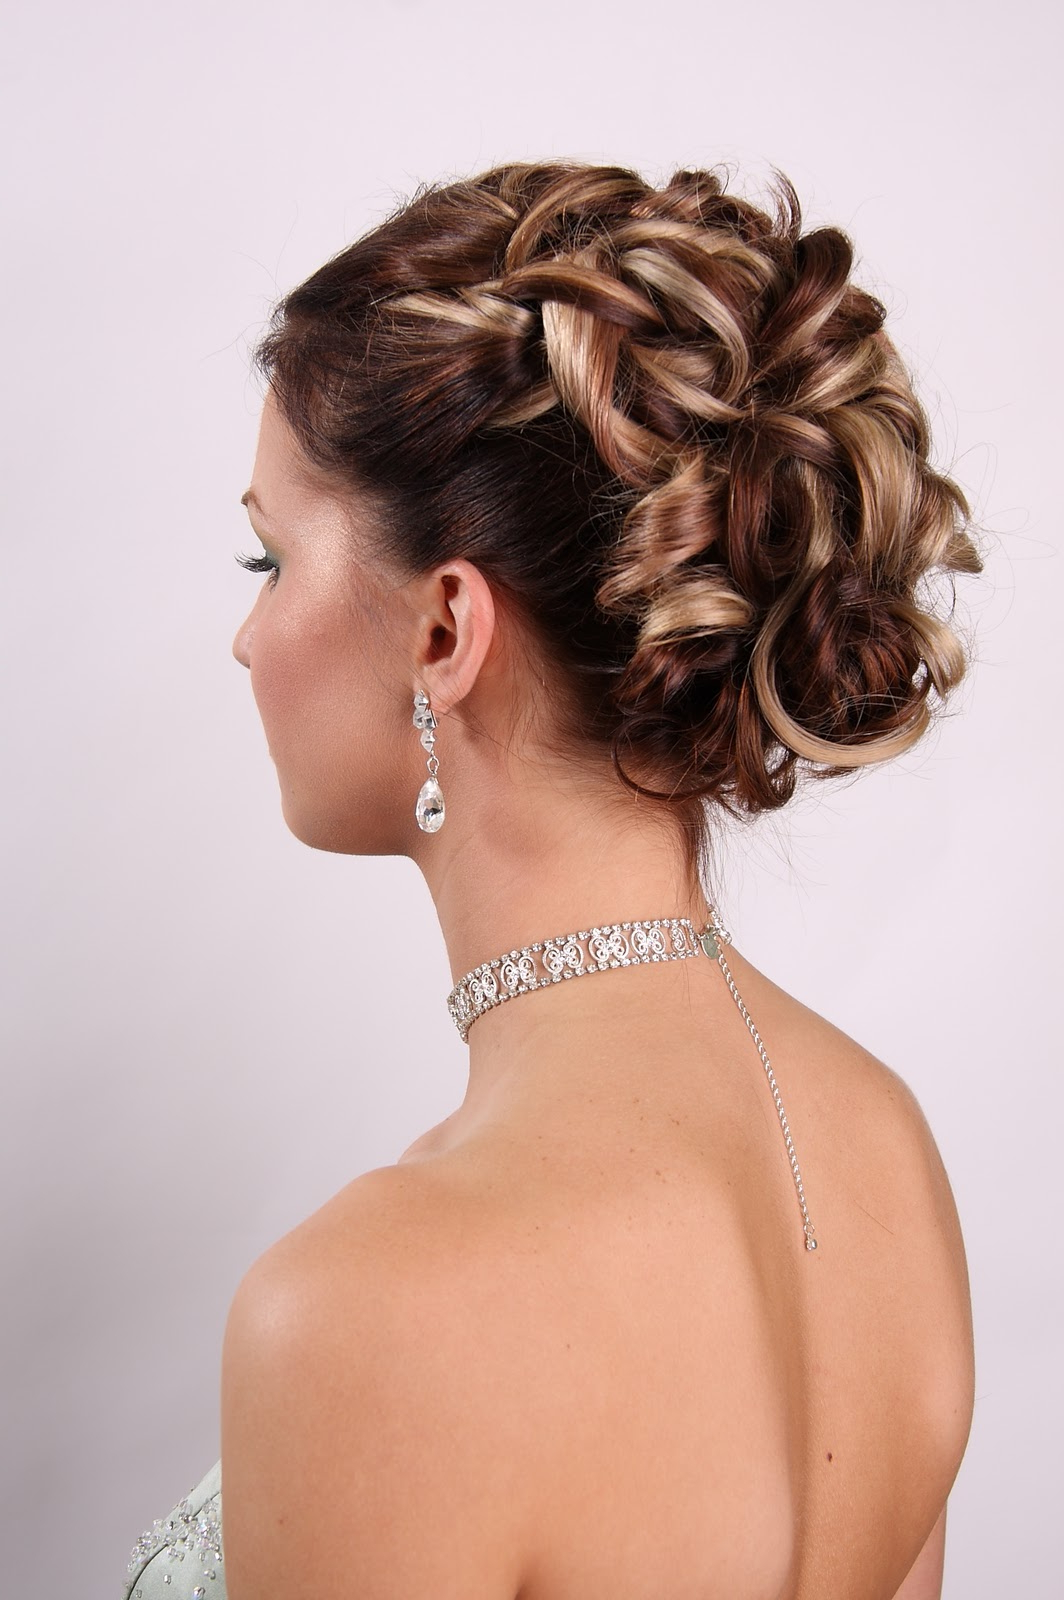 Bridesmaid Hairstyles Medium Length – Hairstyle For Women & Man With Newest Medium Hairstyles For Weddings For Bridesmaids (View 4 of 20)